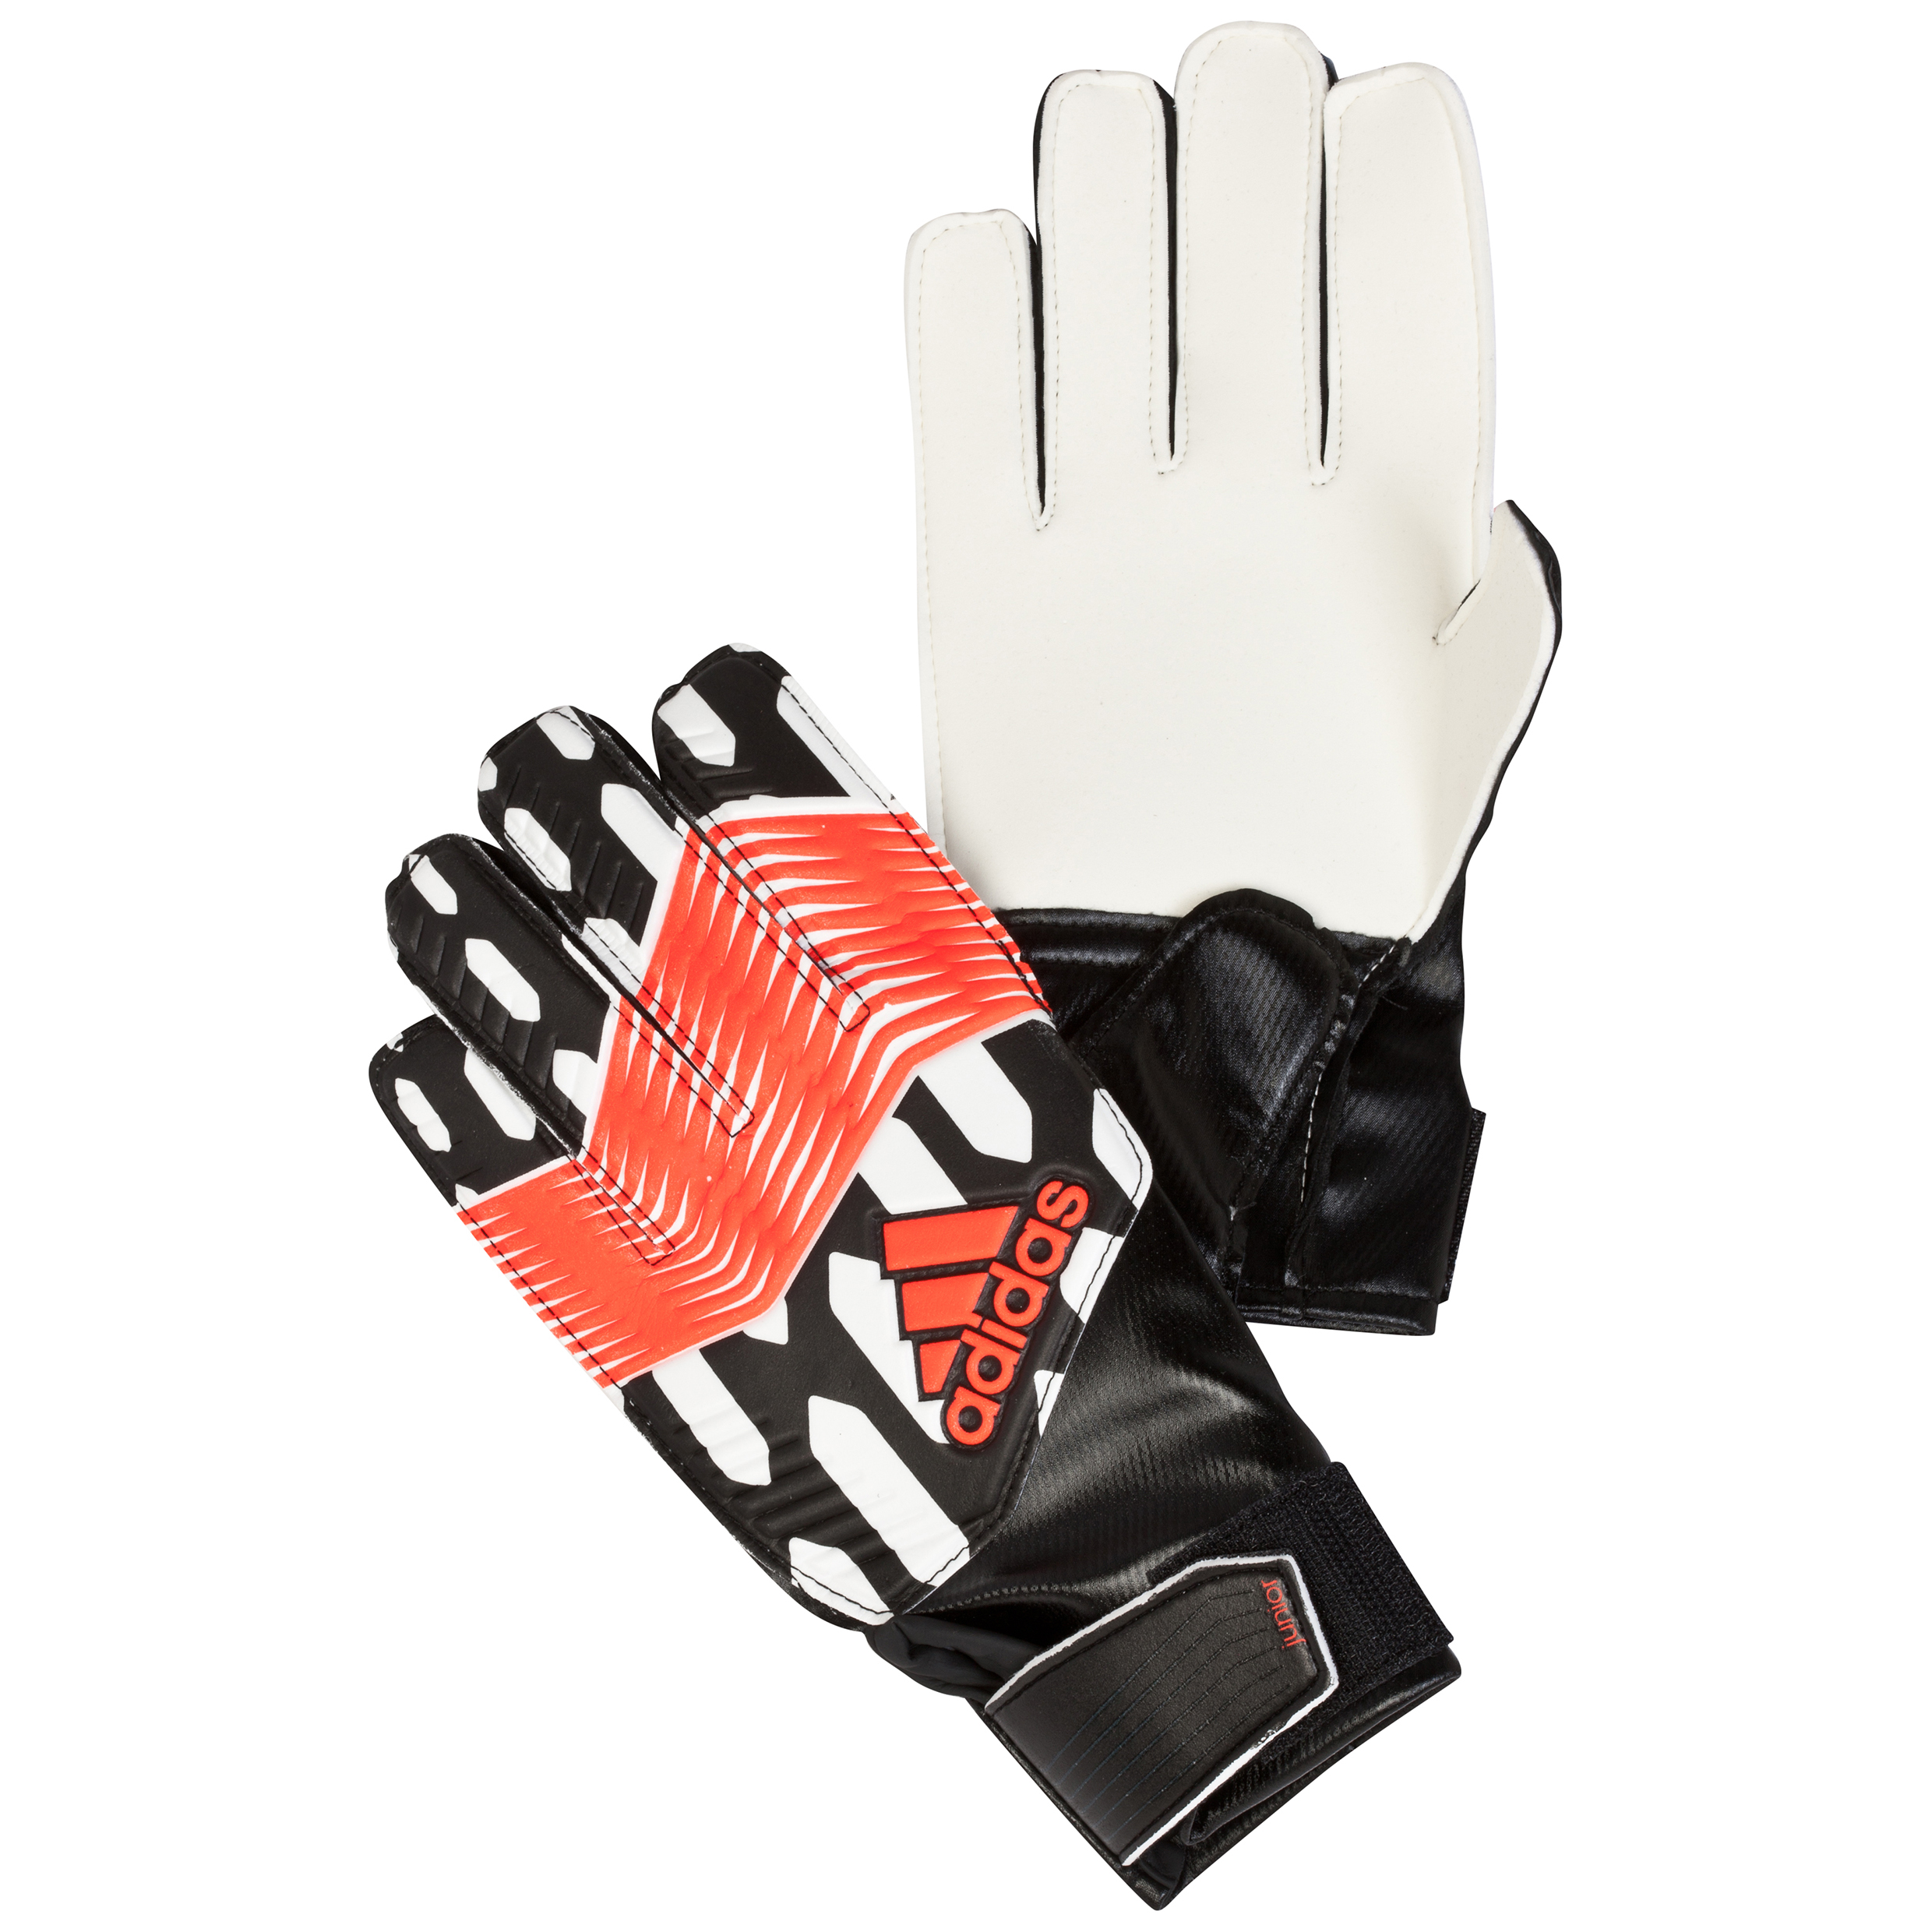 Adidas Predator Junior Goalkeeper Gloves Black